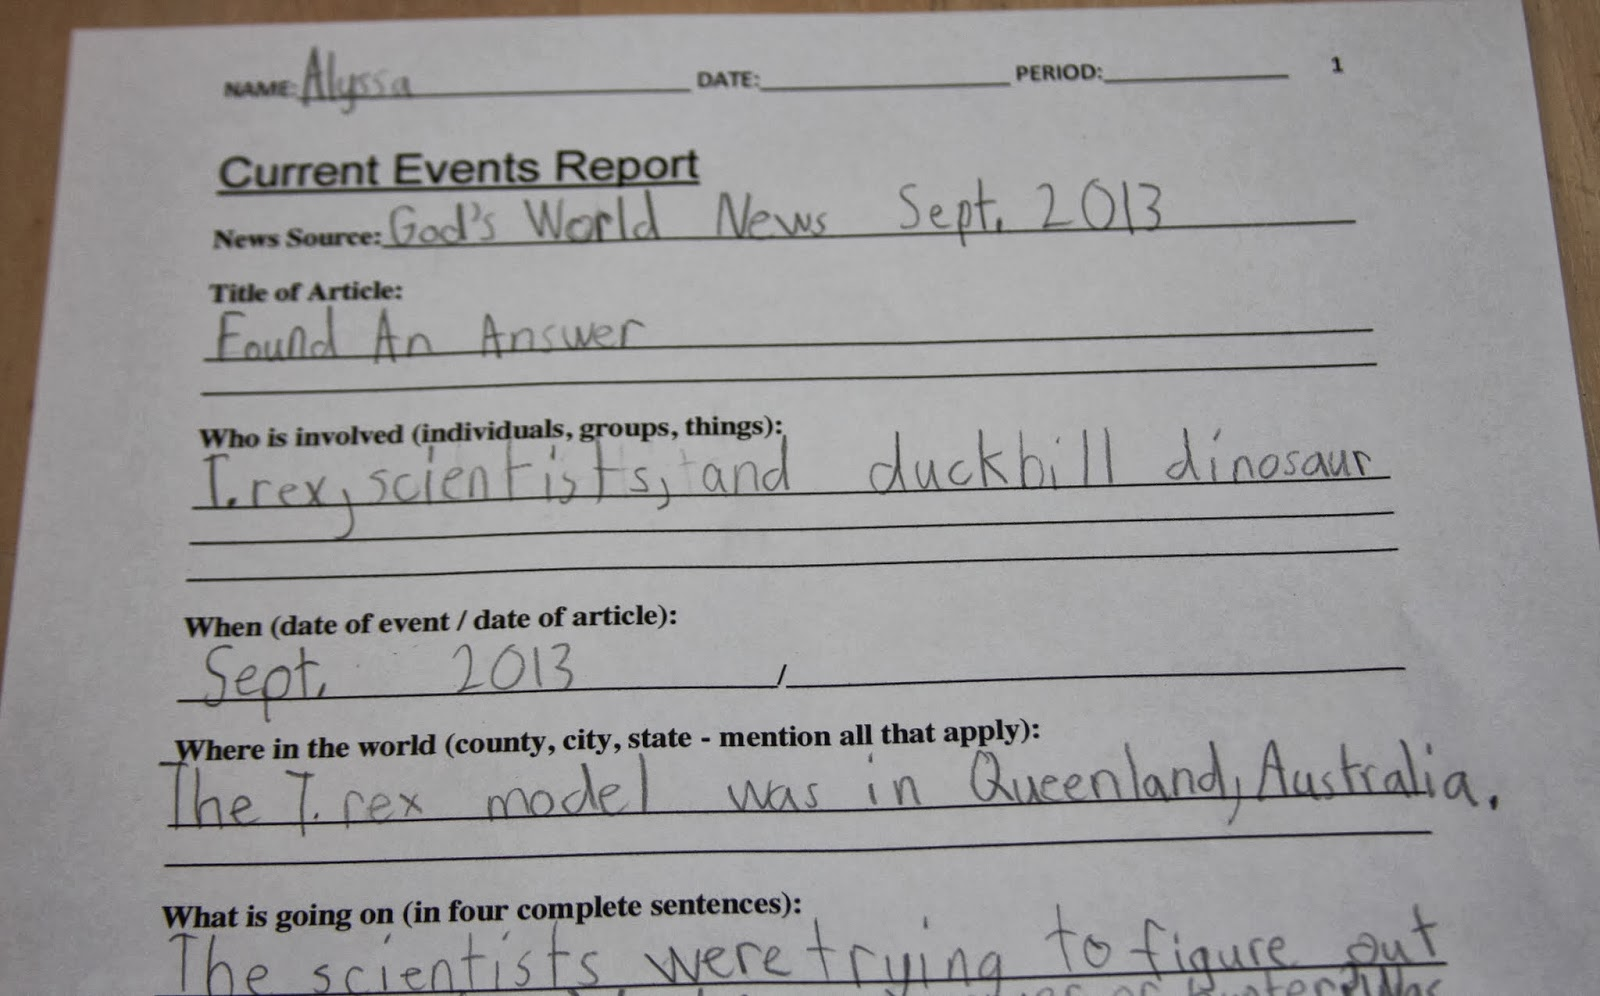 How to write a current event report for school